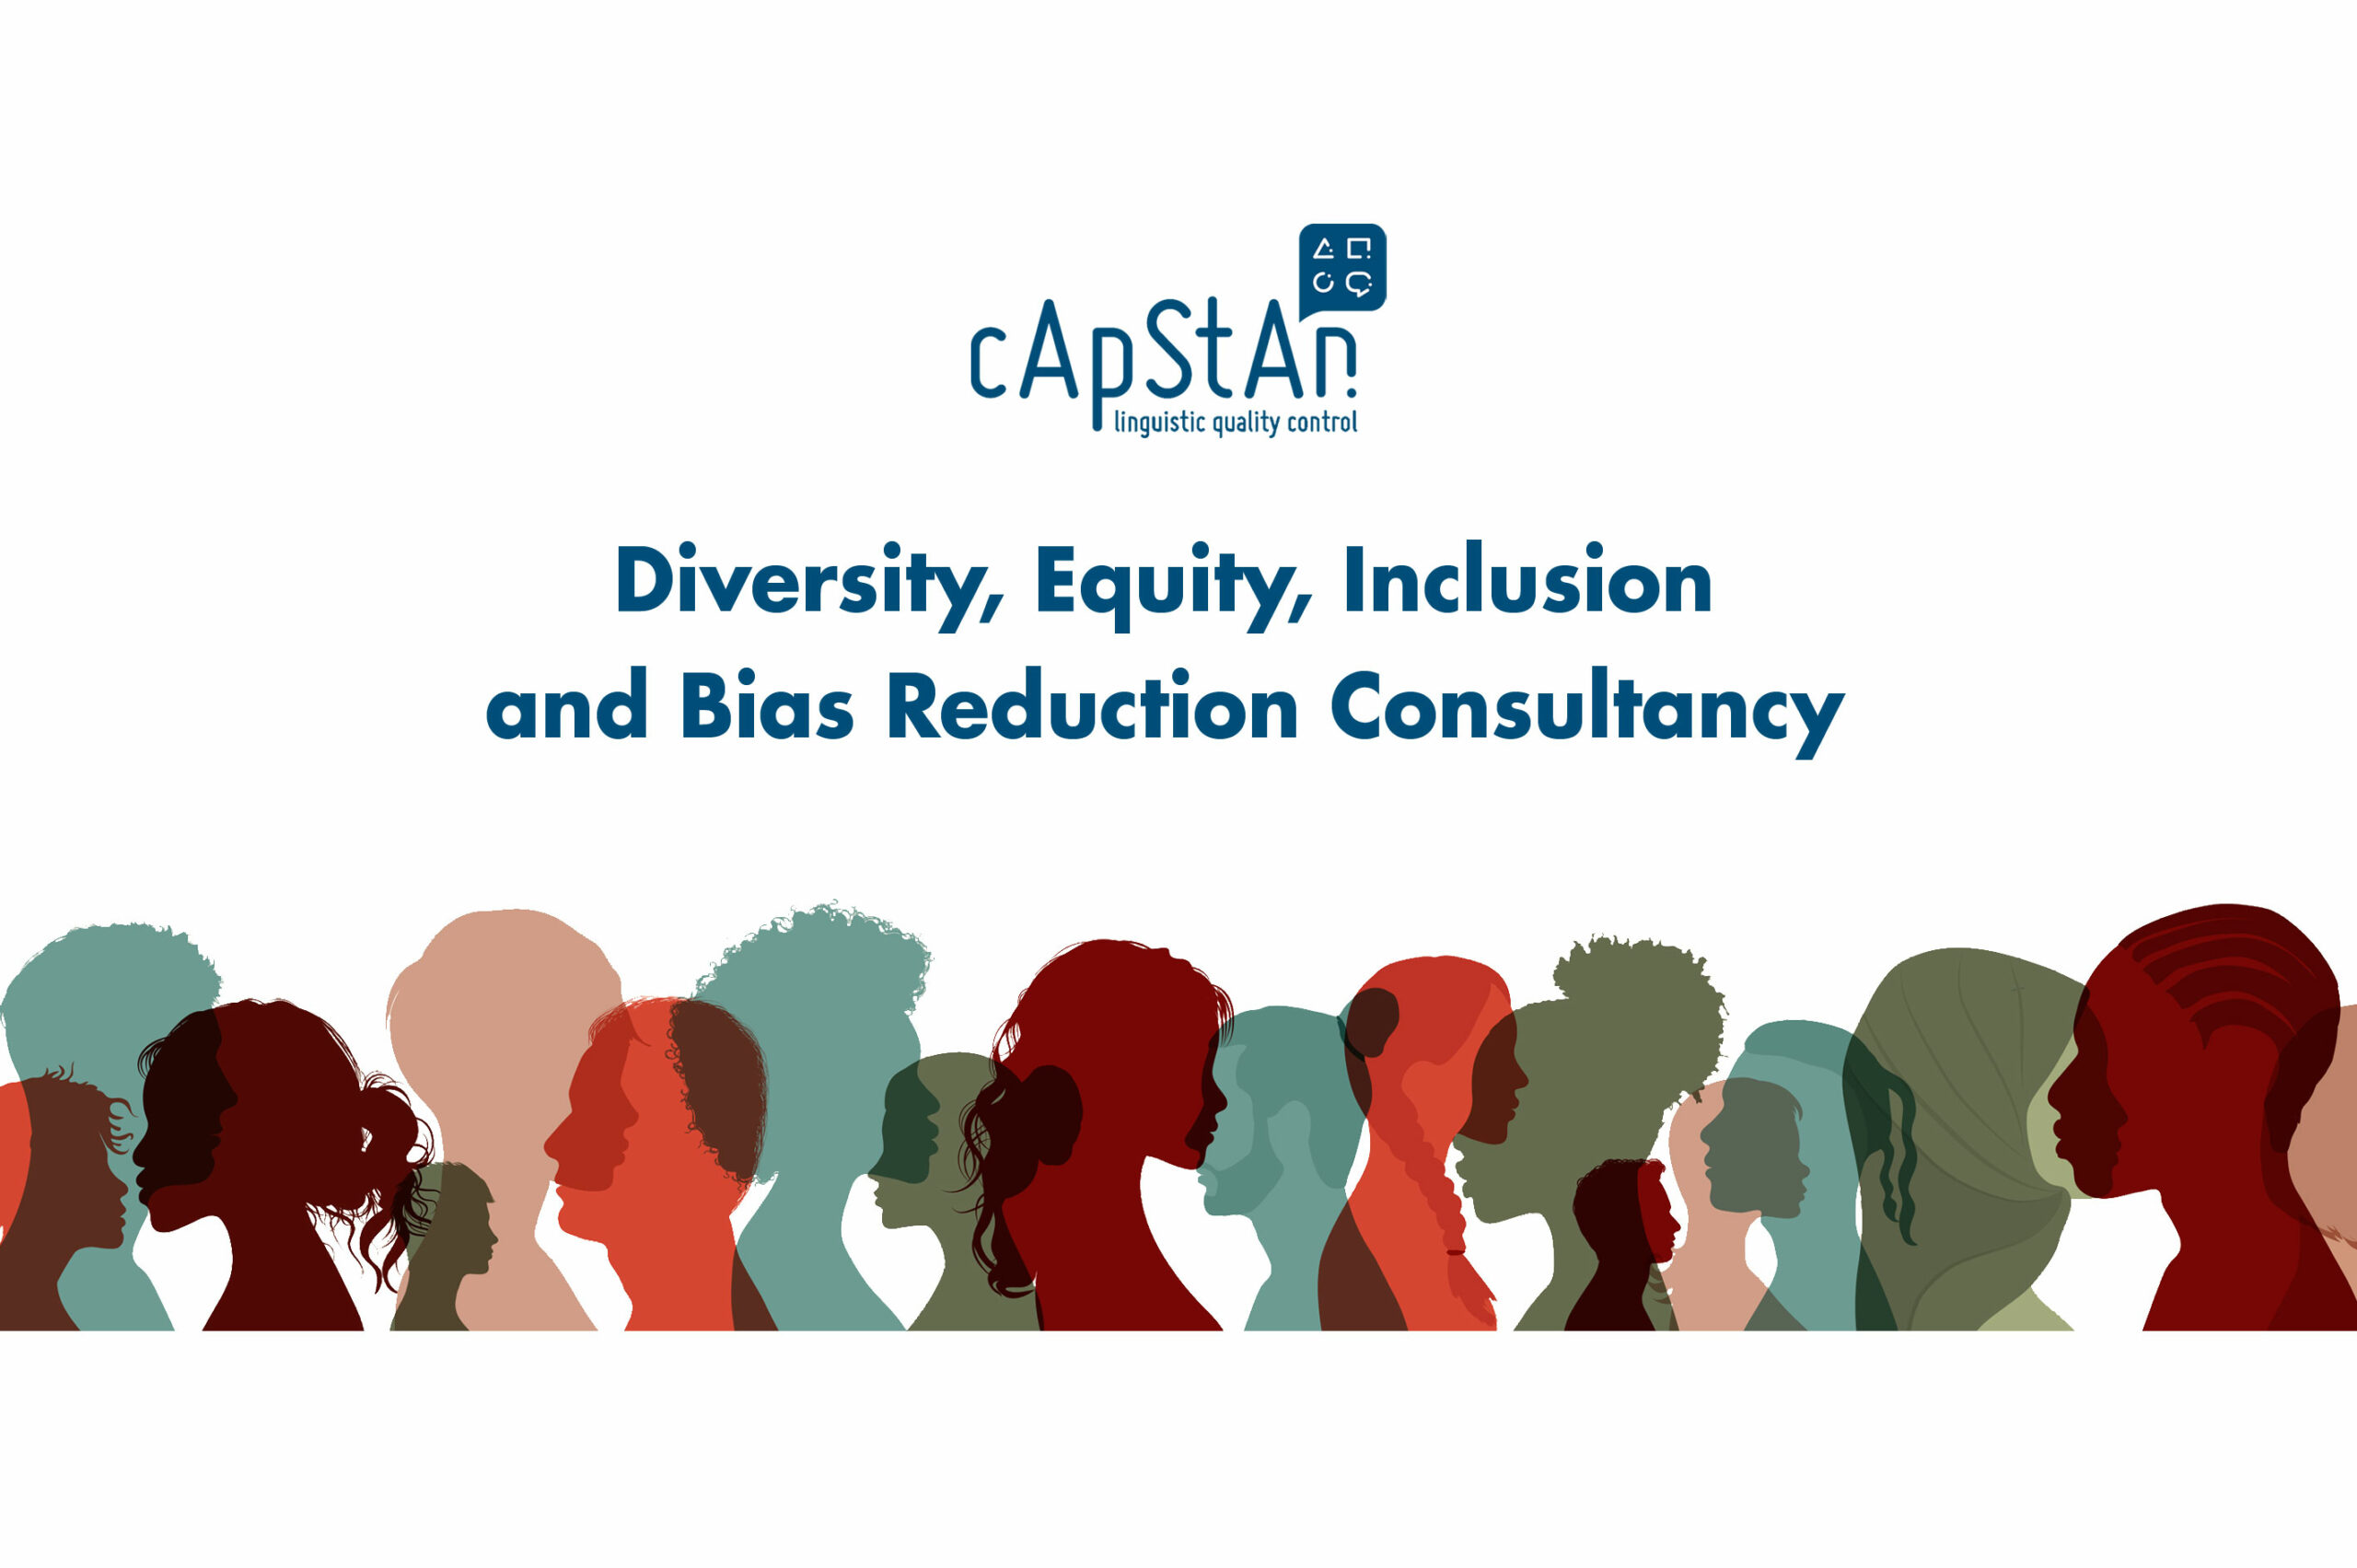 Diversity, Equity, Inclusion & Bias Reduction Consultancy